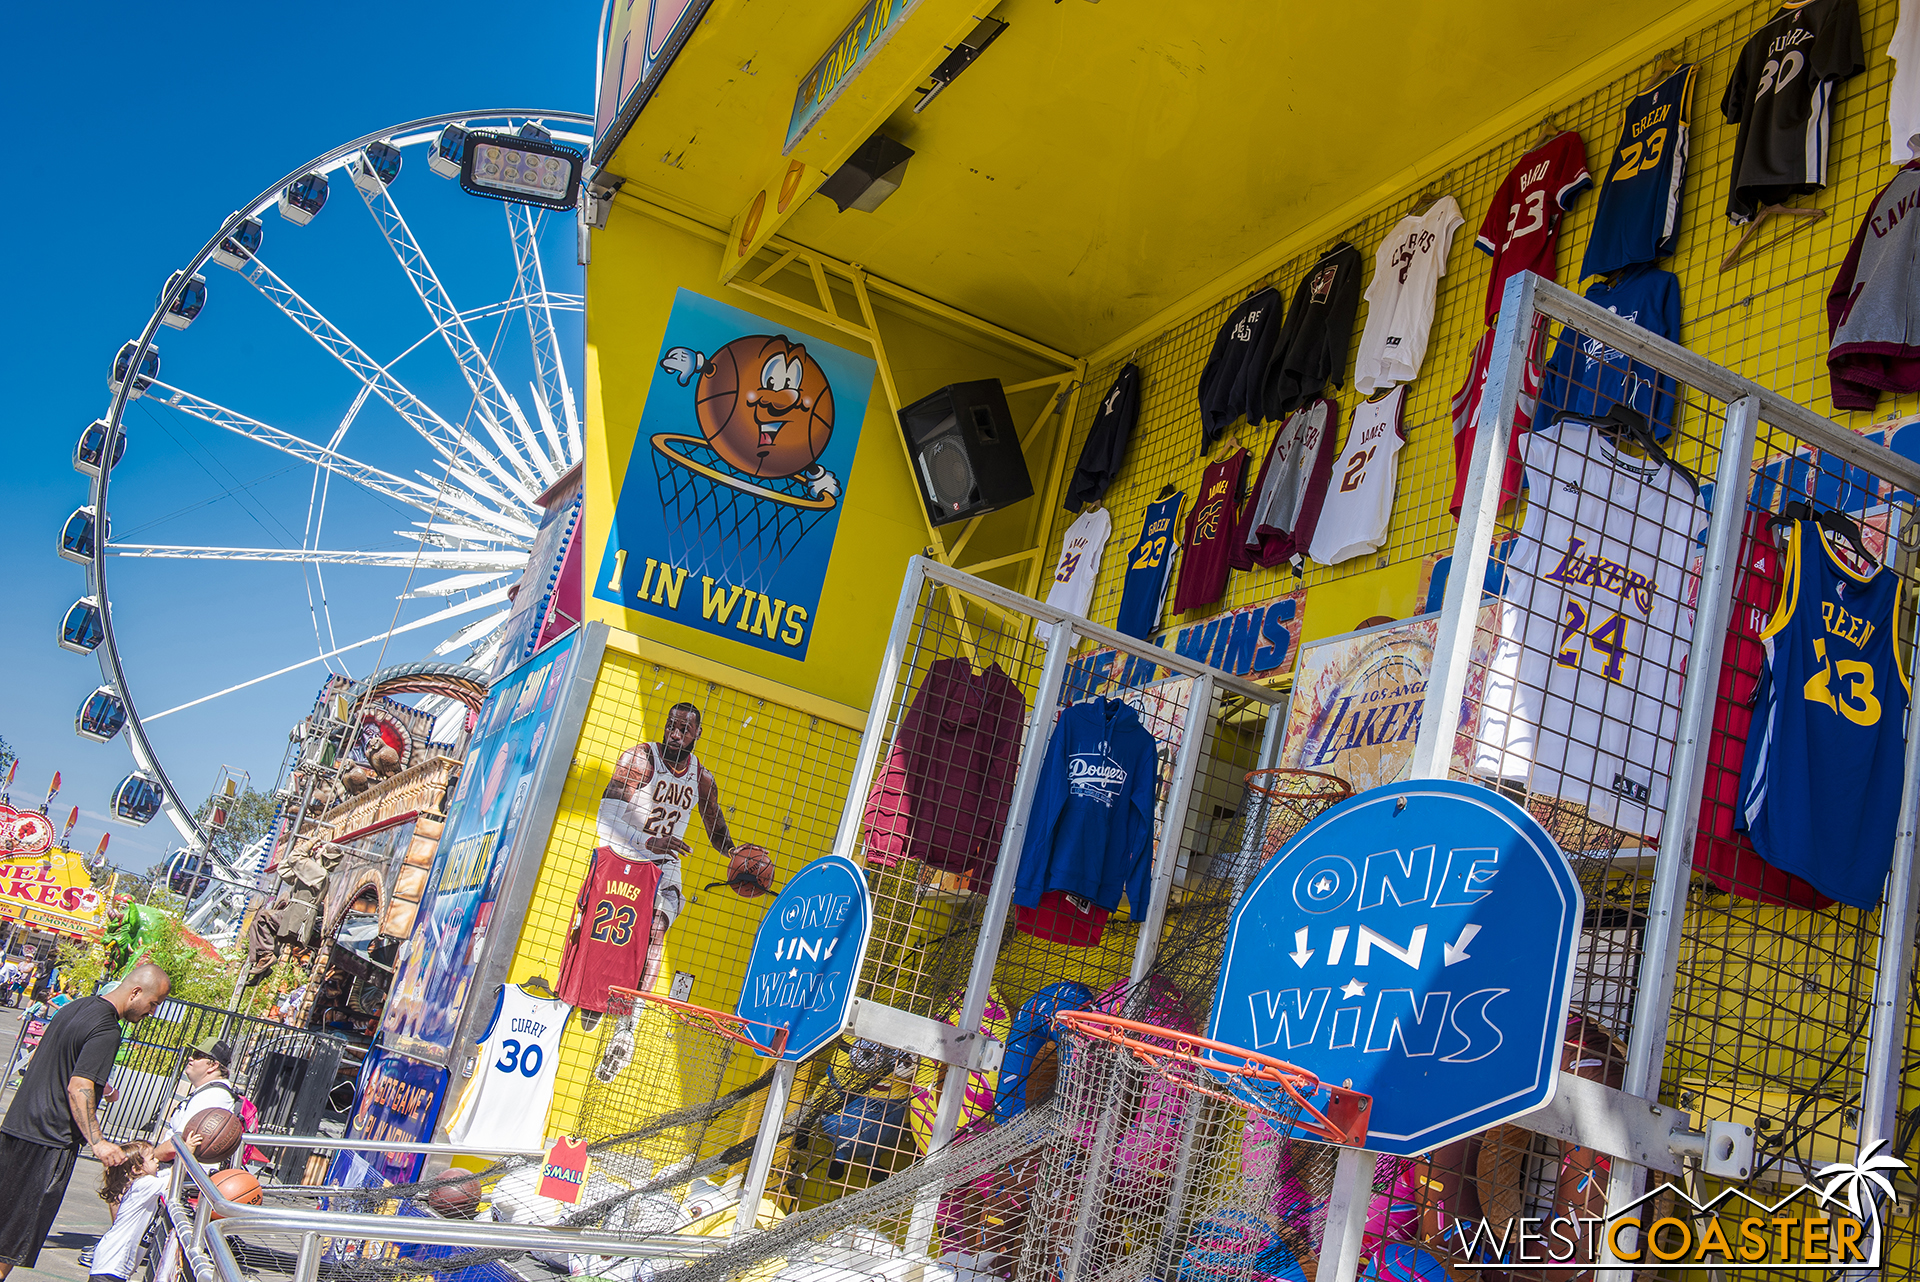 There are plenty of carnival games in both the Family Fairway and Carnival areas too.